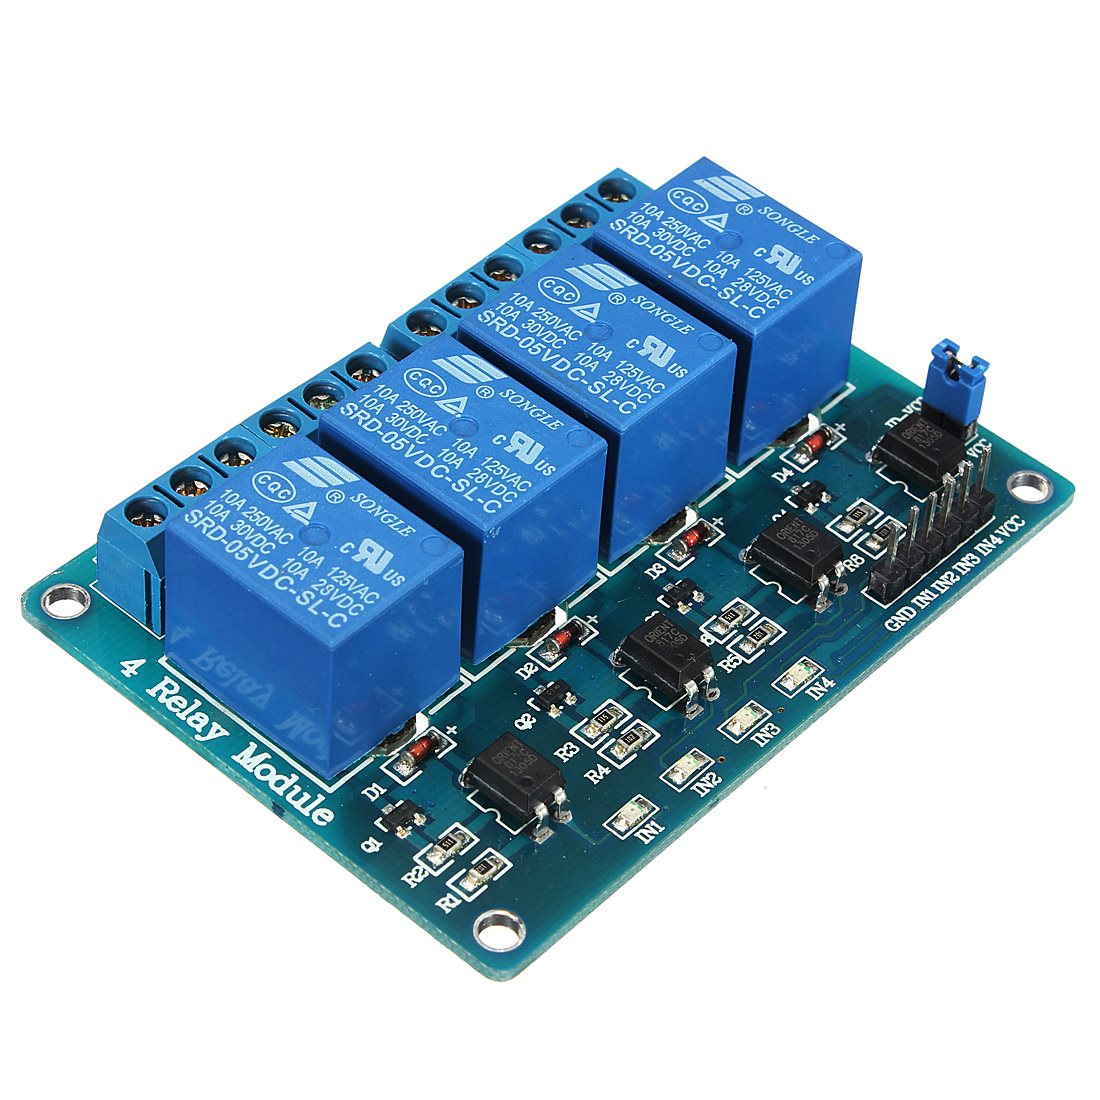 New Electric MSP430 4 Channel 5V Relay Module Low Strigger For Arduino PIC ARM DSP AVR BlueNew Electric MSP430 4 Channel 5V Relay Module Low Strigger For Arduino PIC ARM DSP AVR Blue